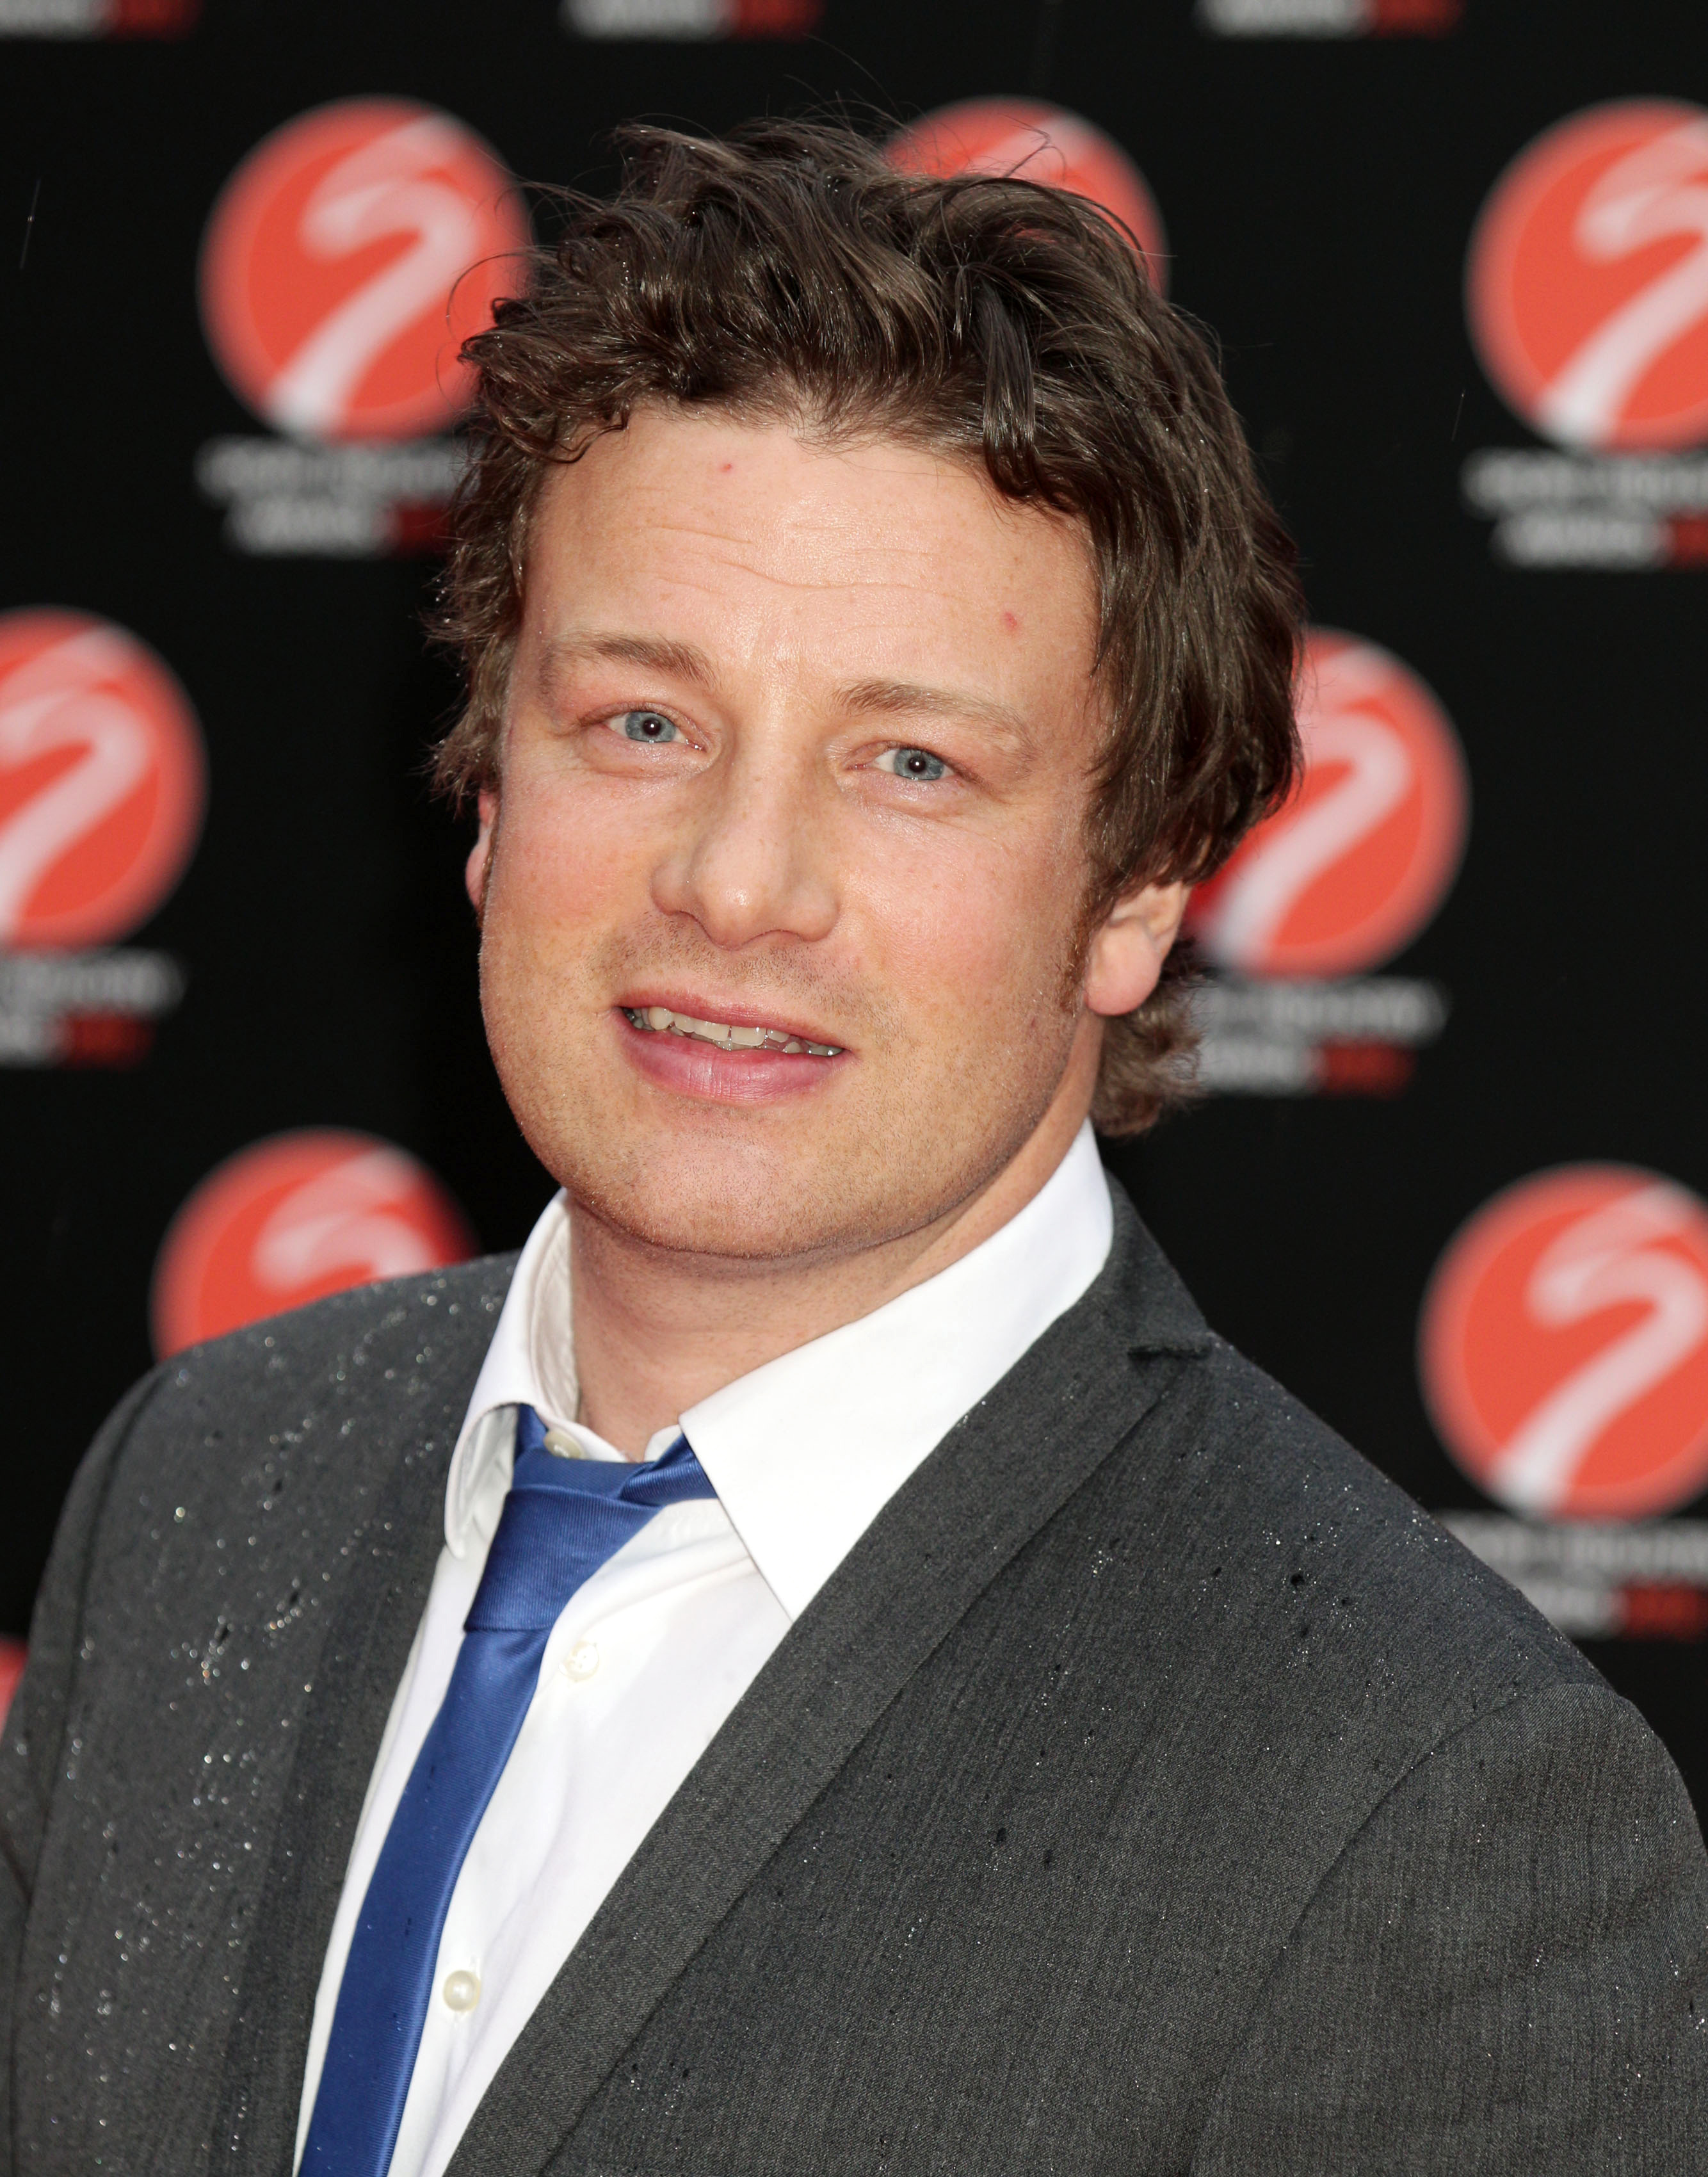 Jamie Oliver sued over 'pink slime' row in US